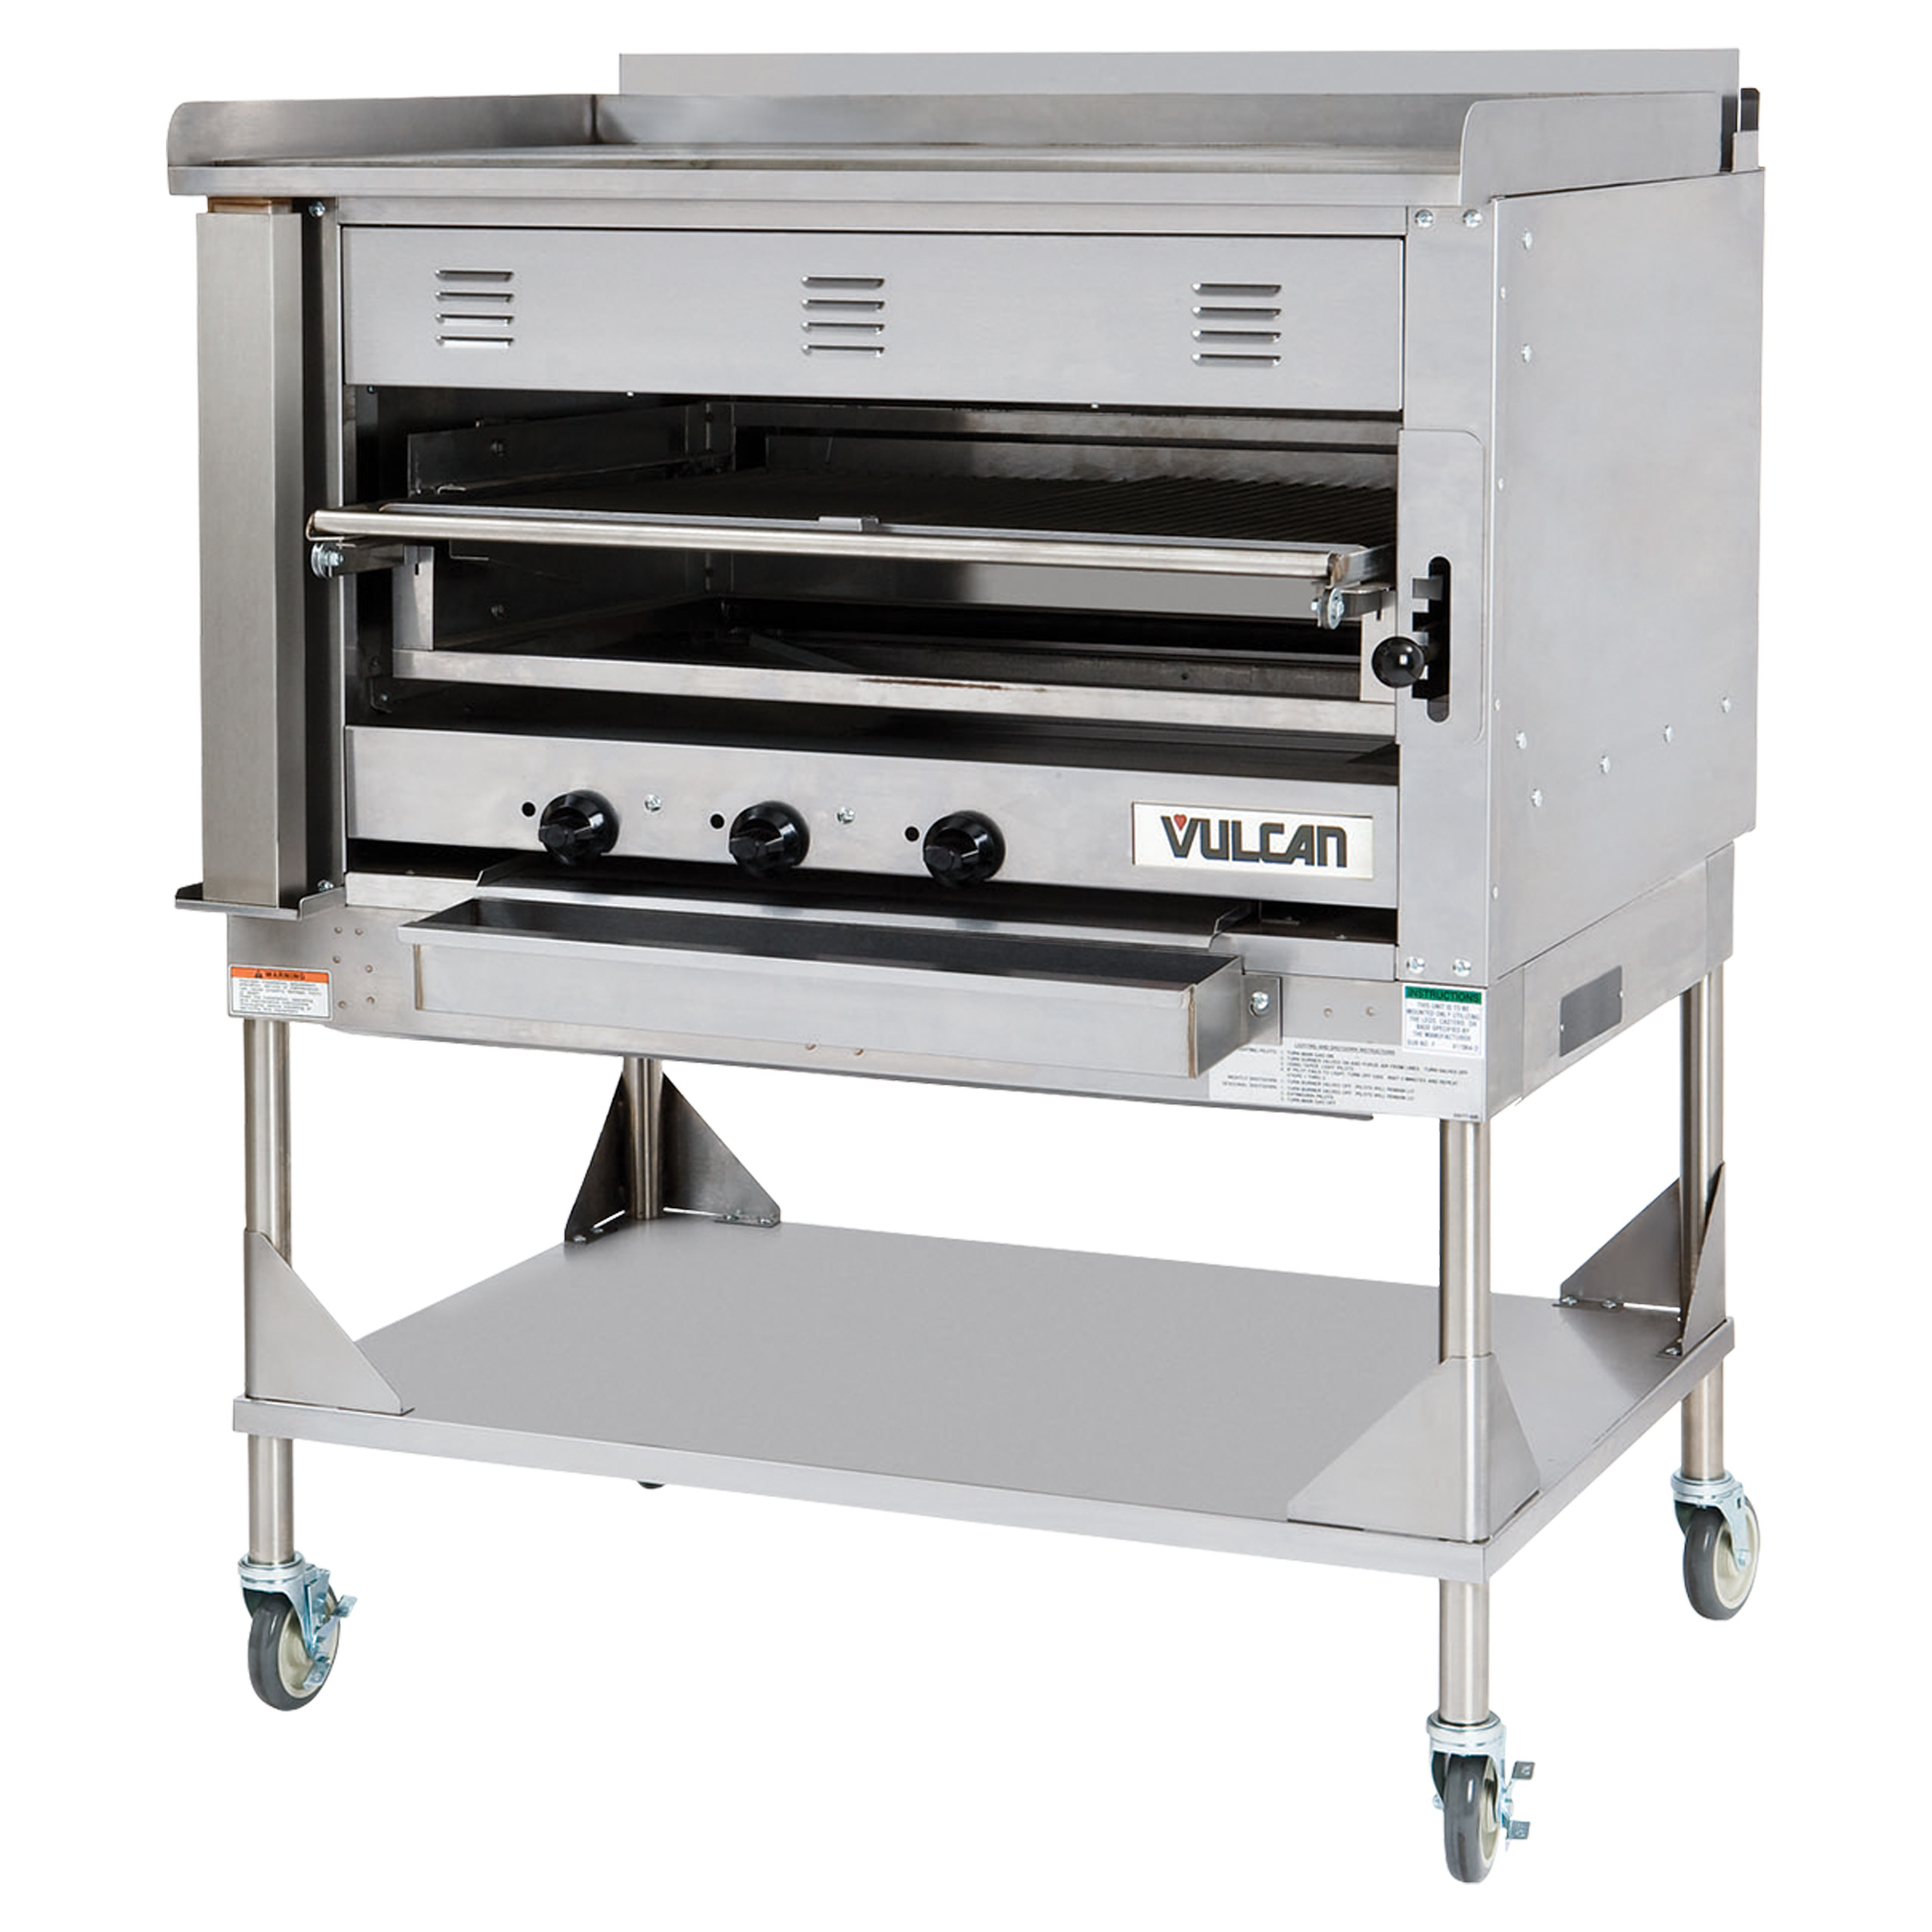 Vulcan VST4B broiler, deck-type, gas